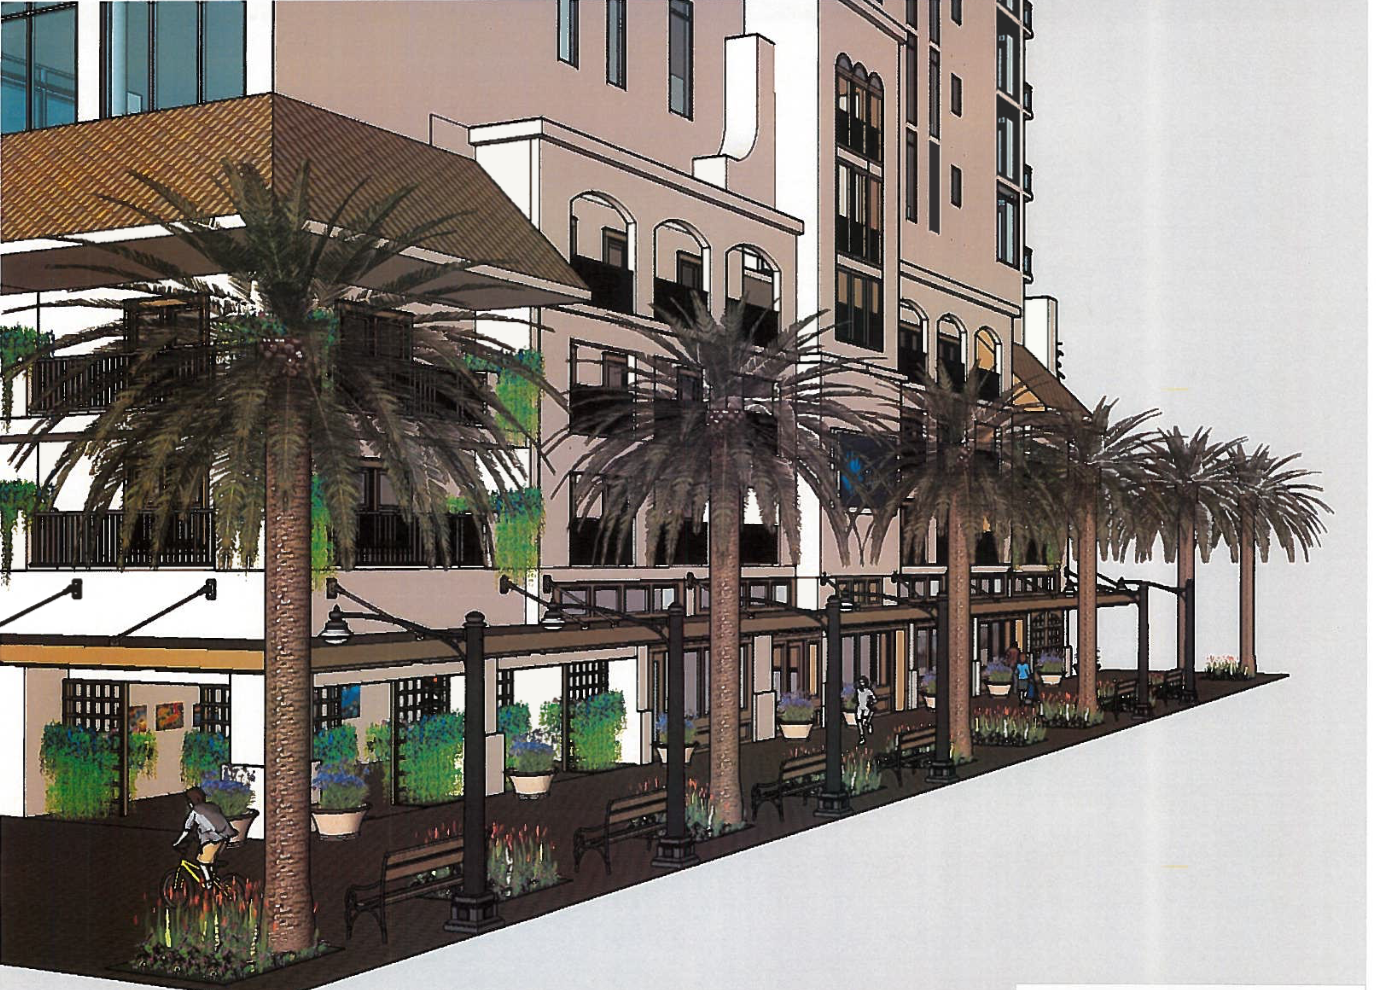 In March 2019, new renderings were released showing a vastly redesigned base.